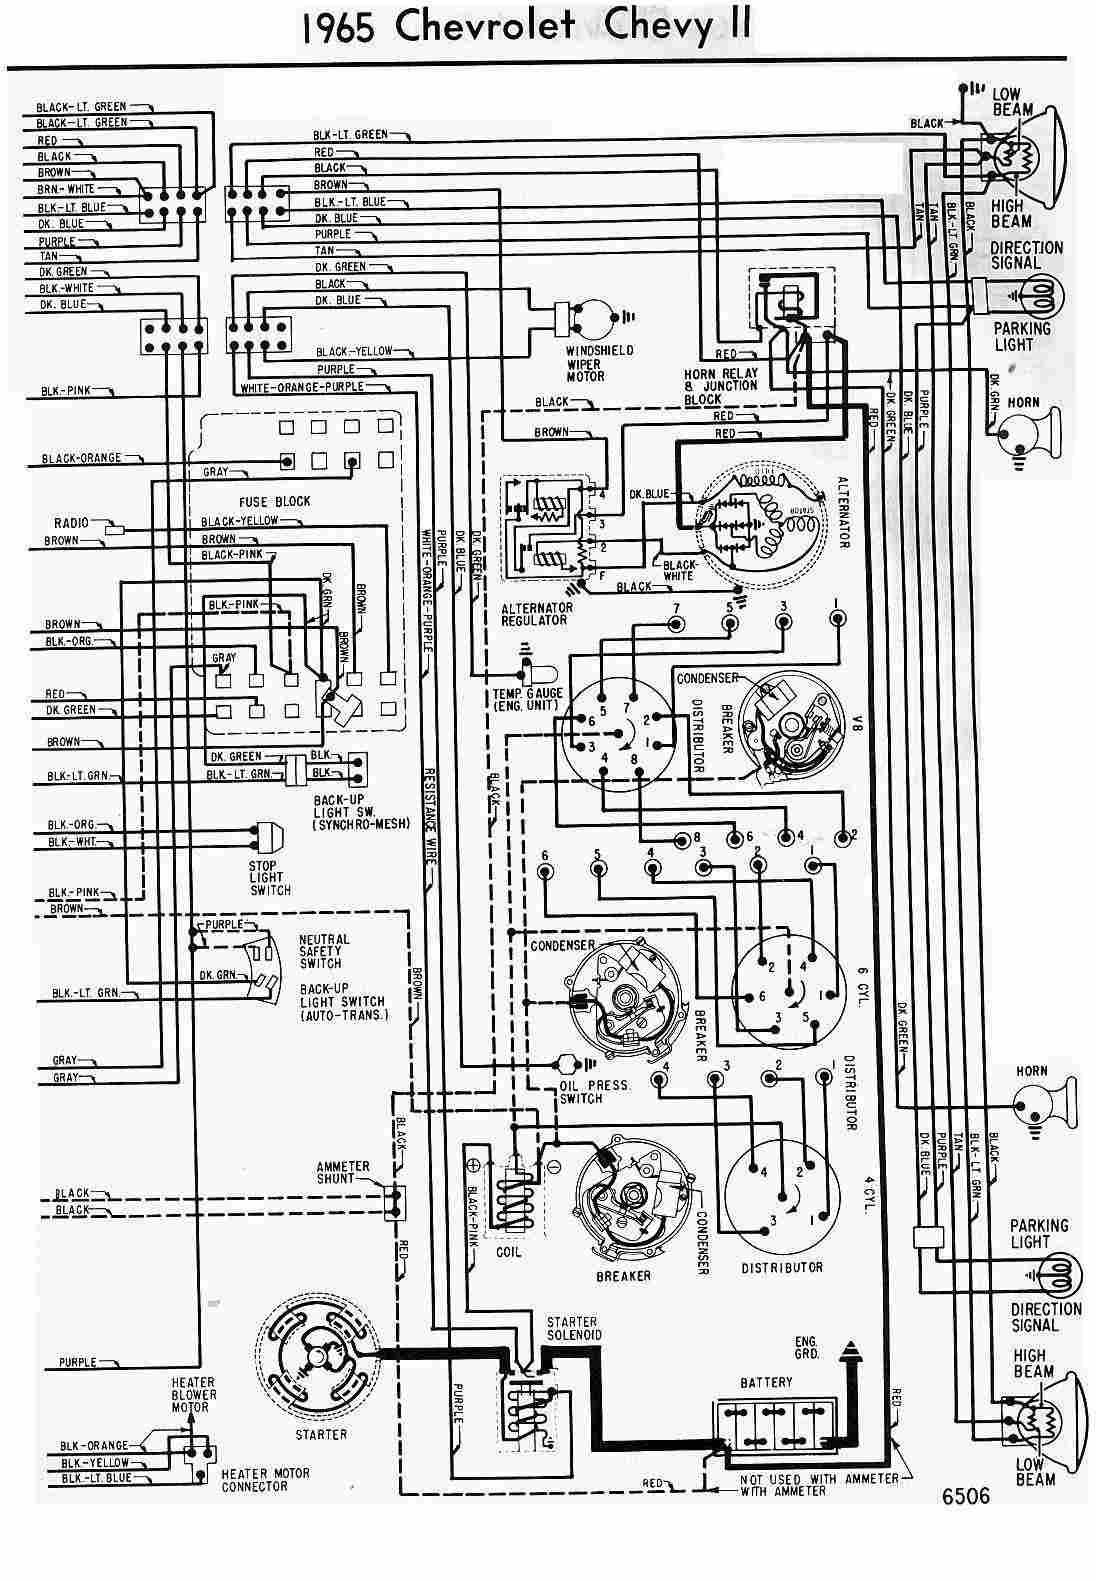 Chevrolet Car Manuals Wiring Diagrams Pdf Fault Codes 2000 Carry All 2 Diagram Headlights Download